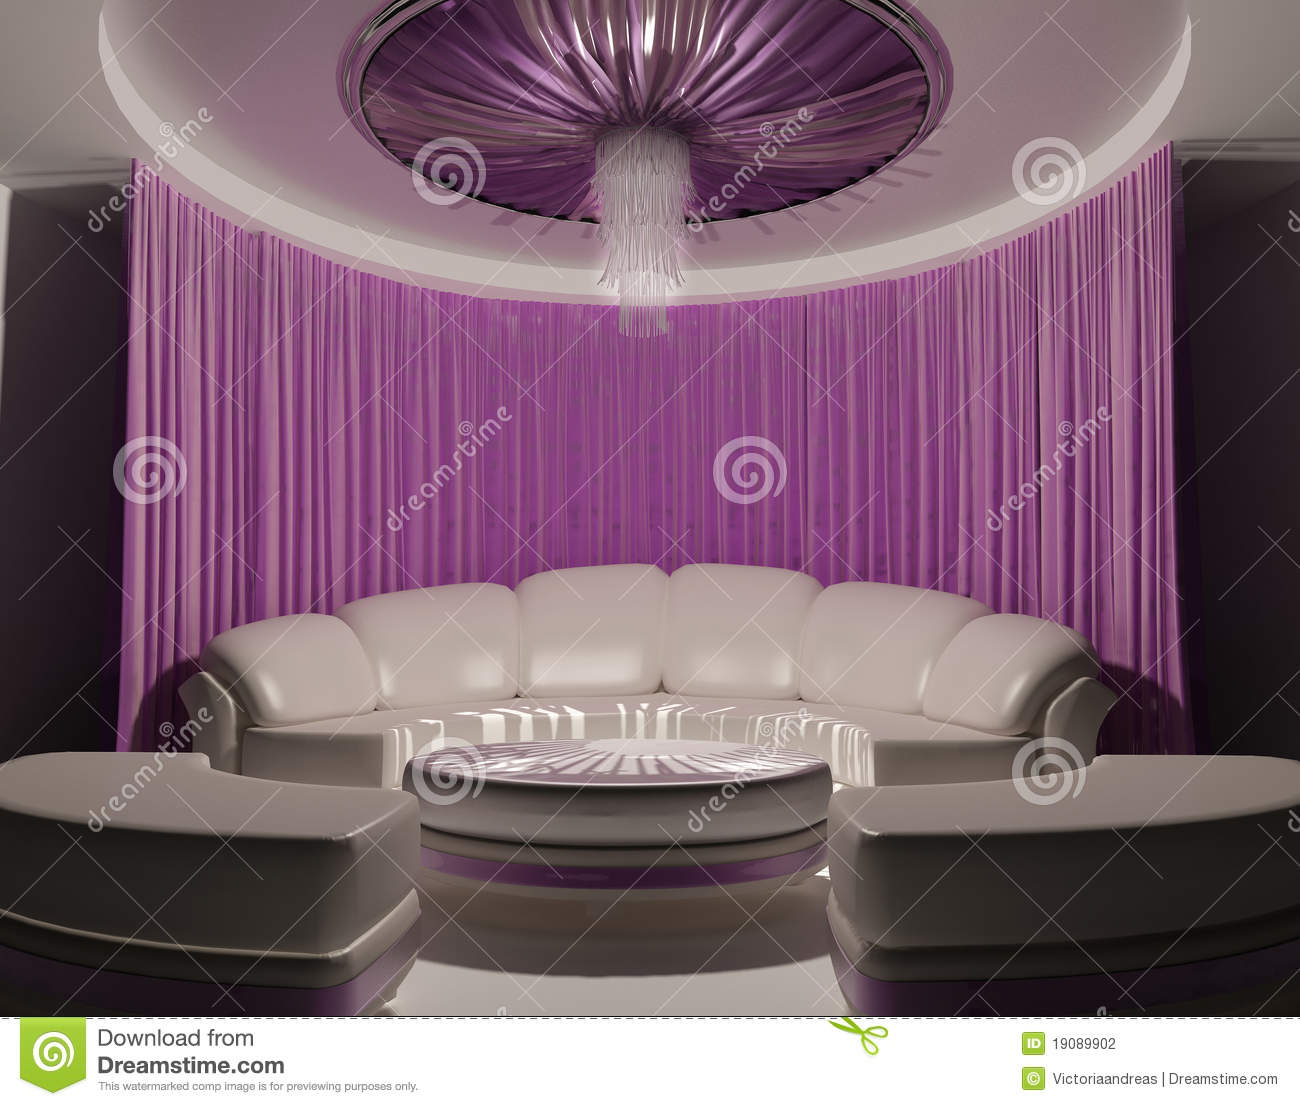 Curtain On The Ceiling And Sofa In Luxury Interior Stock Photography